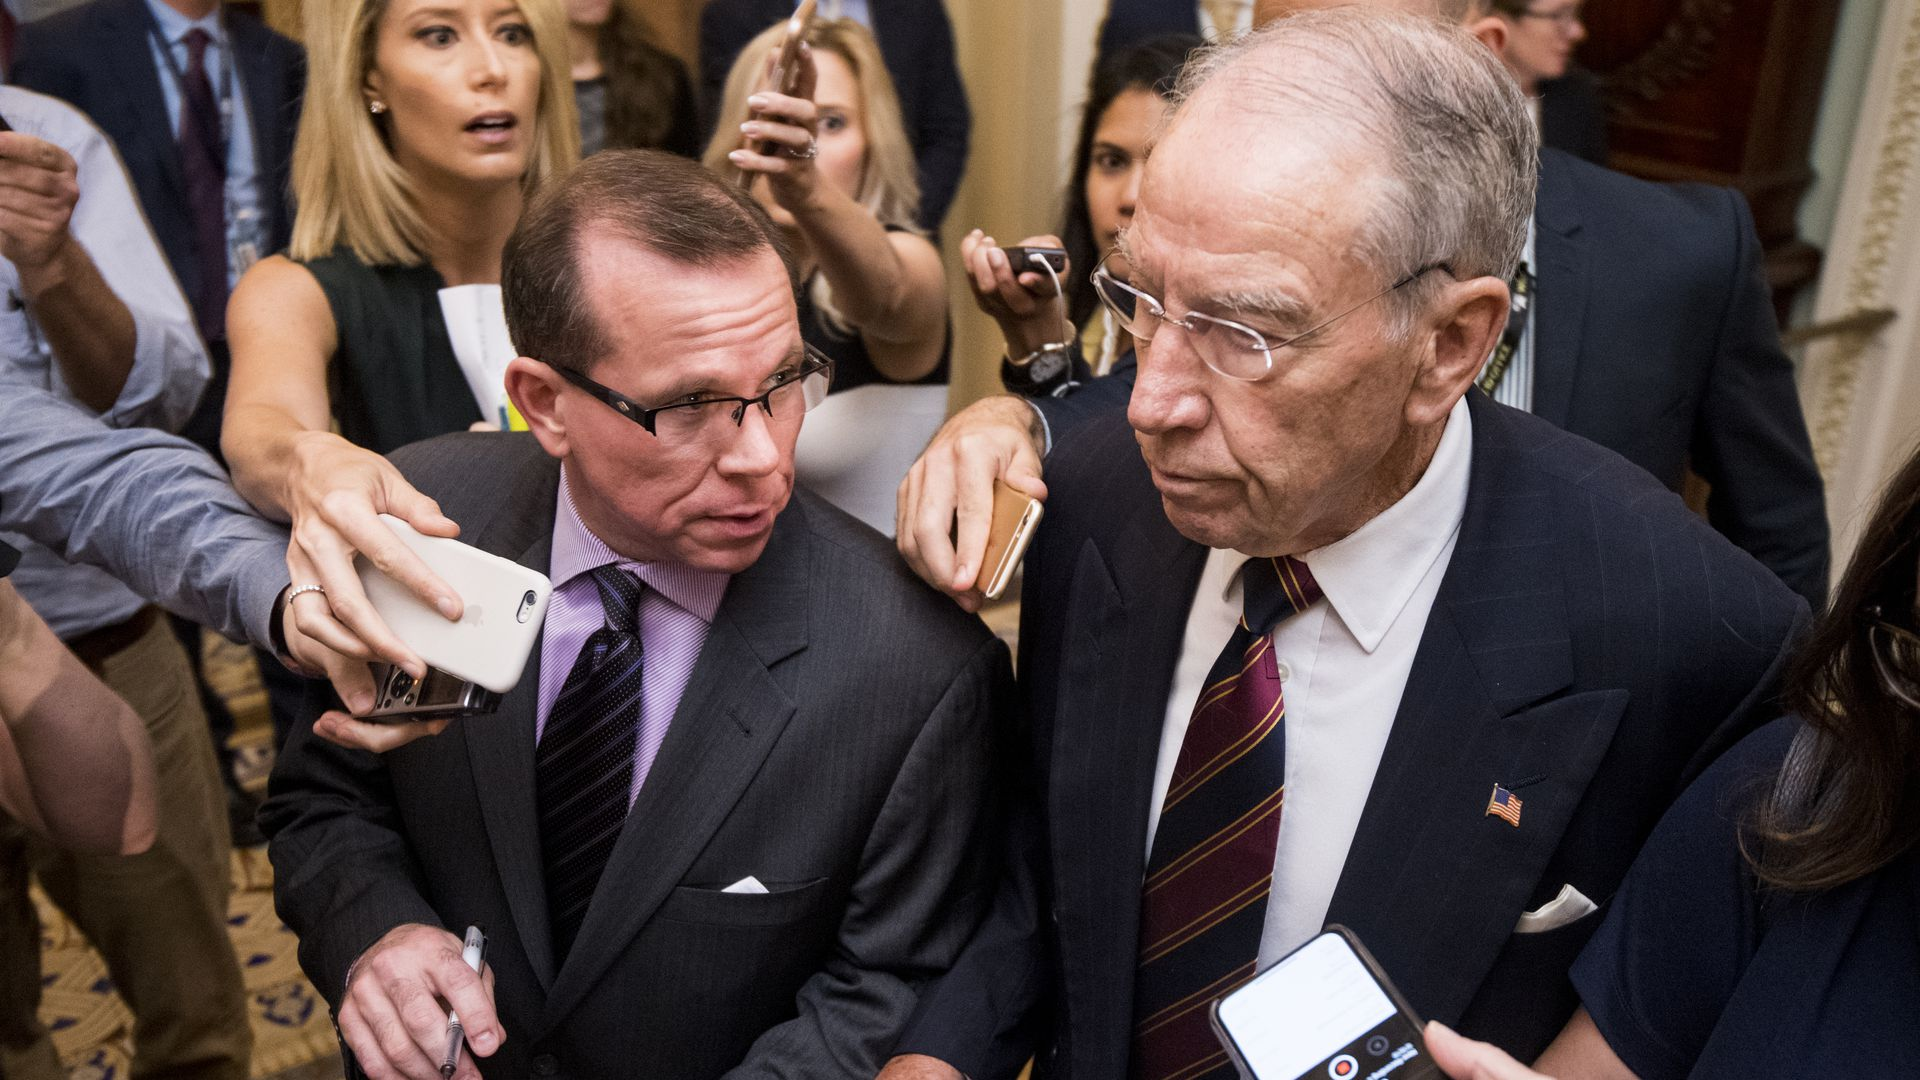 Senator Chuck Grassley surrounded by reporters asking questions.